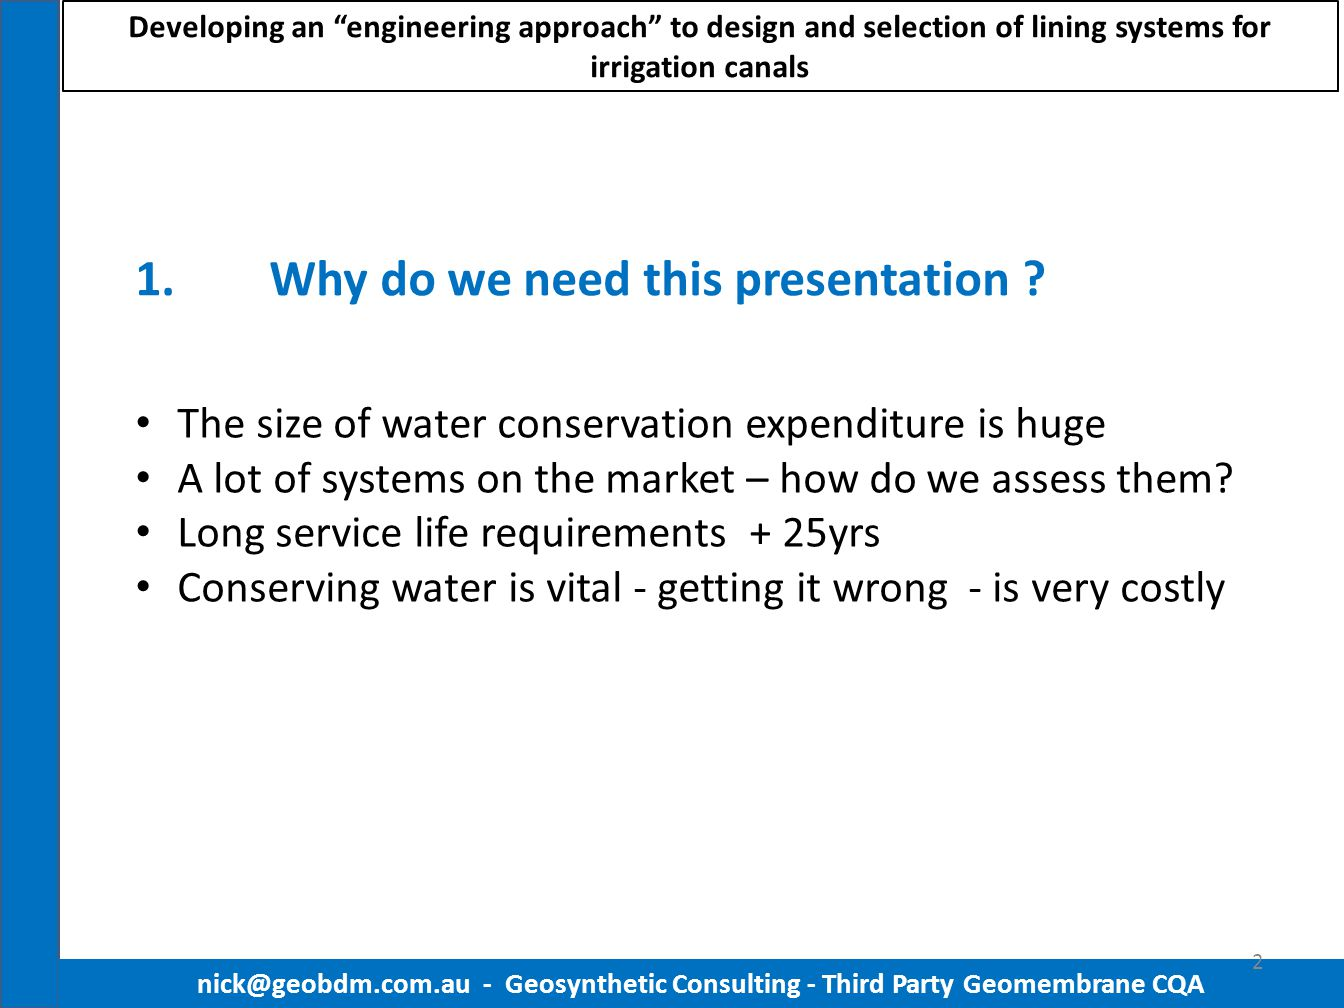 8.All of these Canal lining reports – support tearing and abrasion as the most important failure mechanisms of canal liners nick@geobdm.com.au - Geosynthetic Consulting - Third Party Geomembrane CQA 13 Developing an engineering approach to design and selection of lining systems for irrigation canals